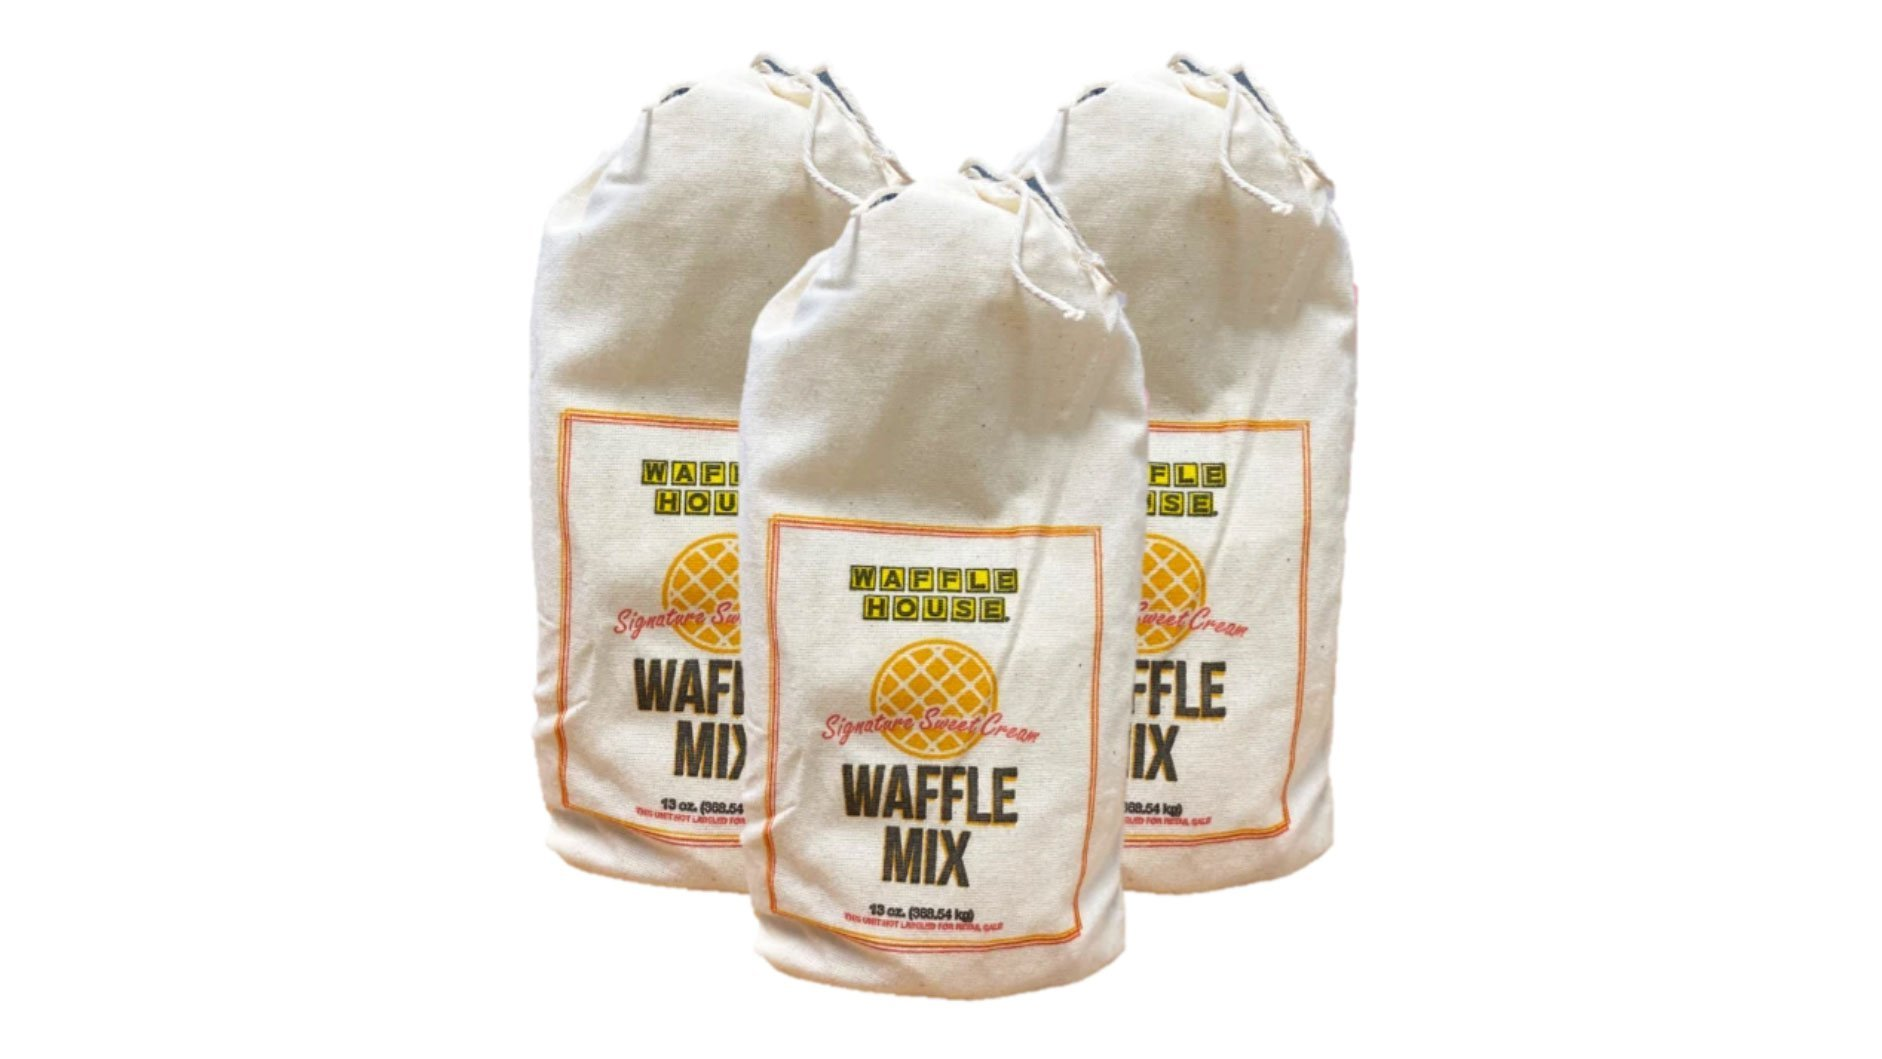 Waffle House sold out of its waffle mix online in just four hours